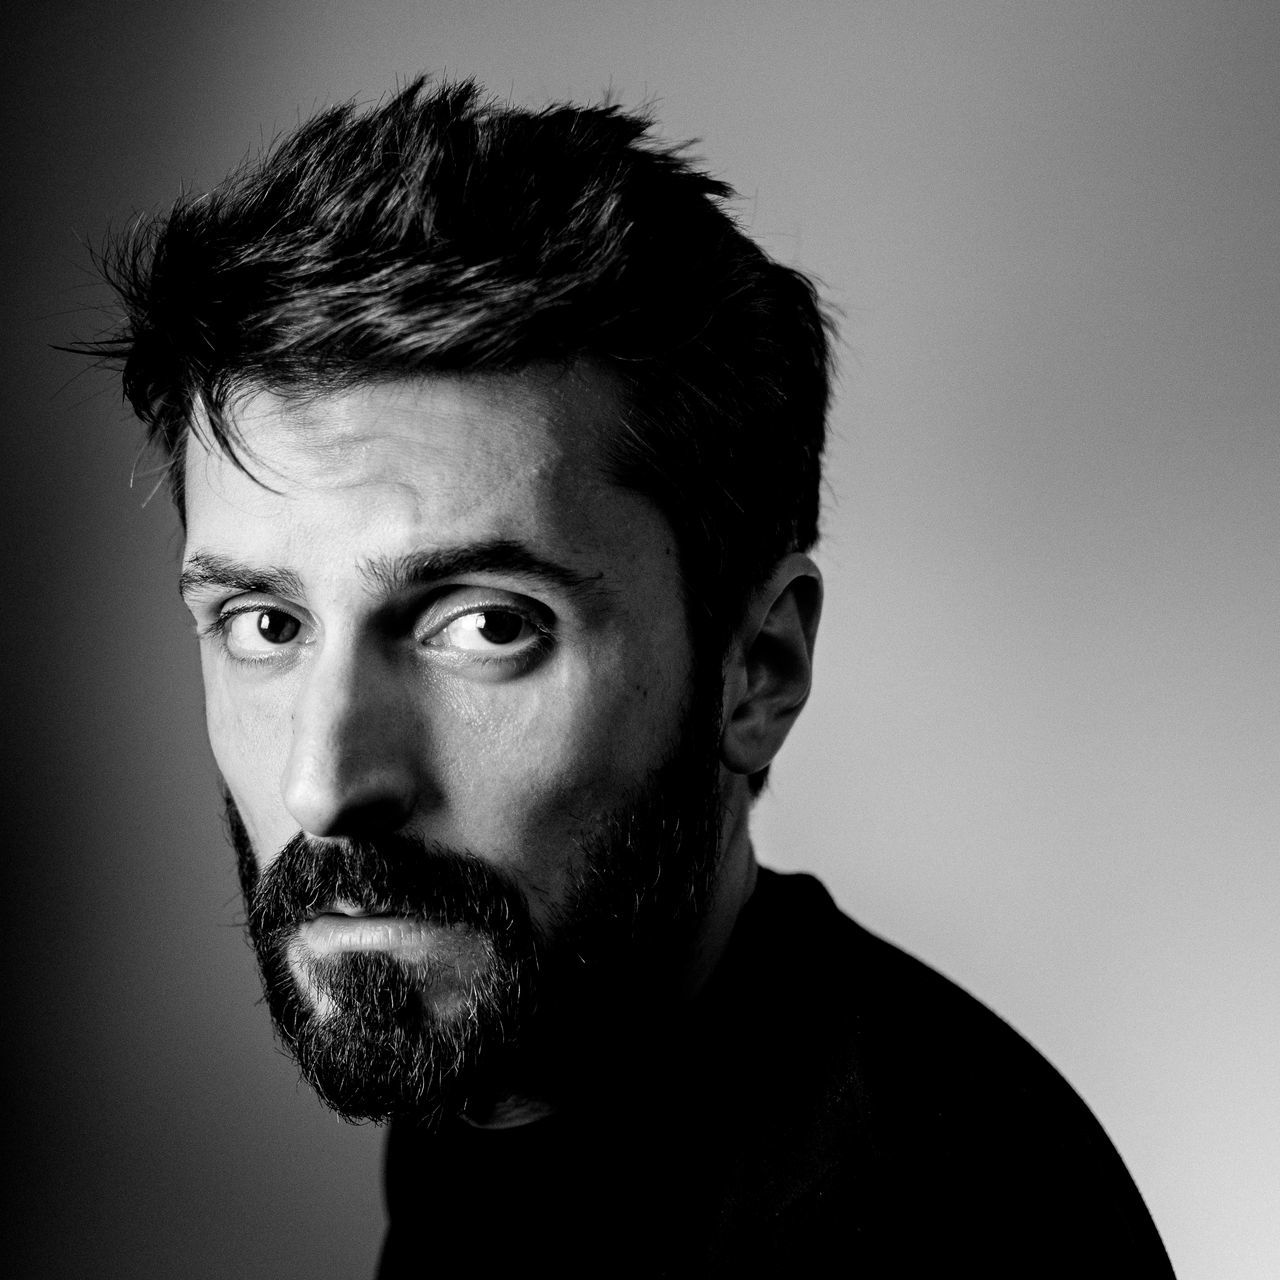 Irving Penn's tribute beard Black & White black and white black and white photography Black Background blackandwhite blackandwhite photography close-up gaze Hair headshot Looking At Camera one man only one person plain background portrait studio shot young adult Fresh on Market 2017